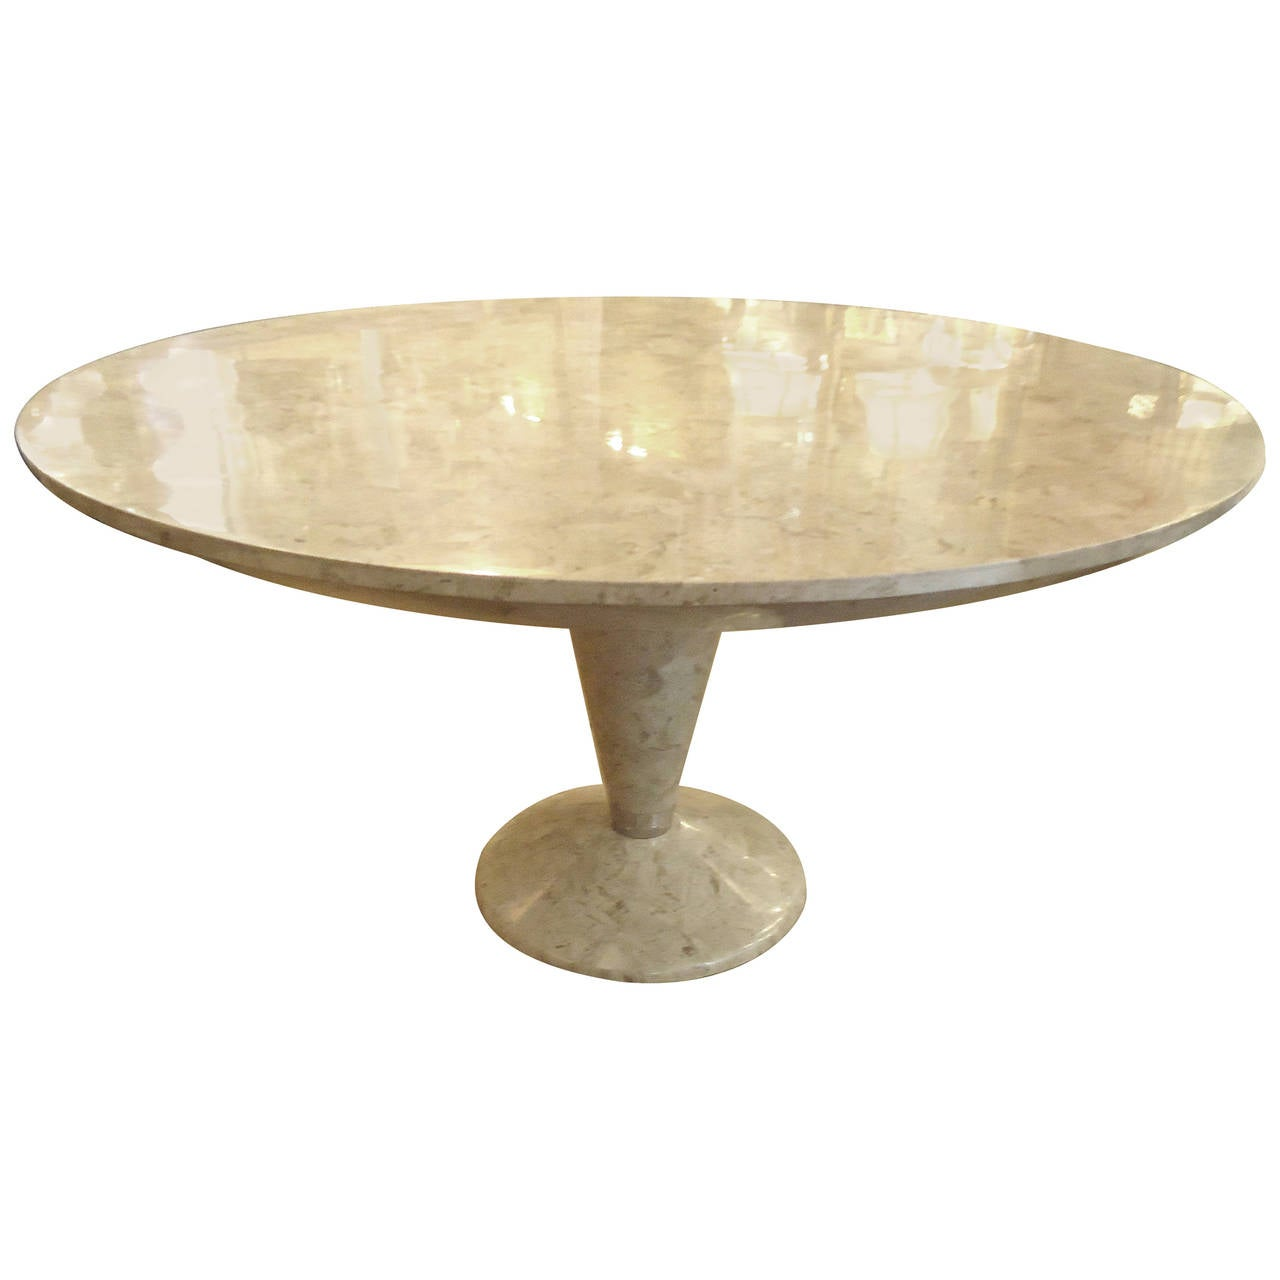 Elegant cream tessellated stone round dining table at 1stdibs for Round stone top dining table